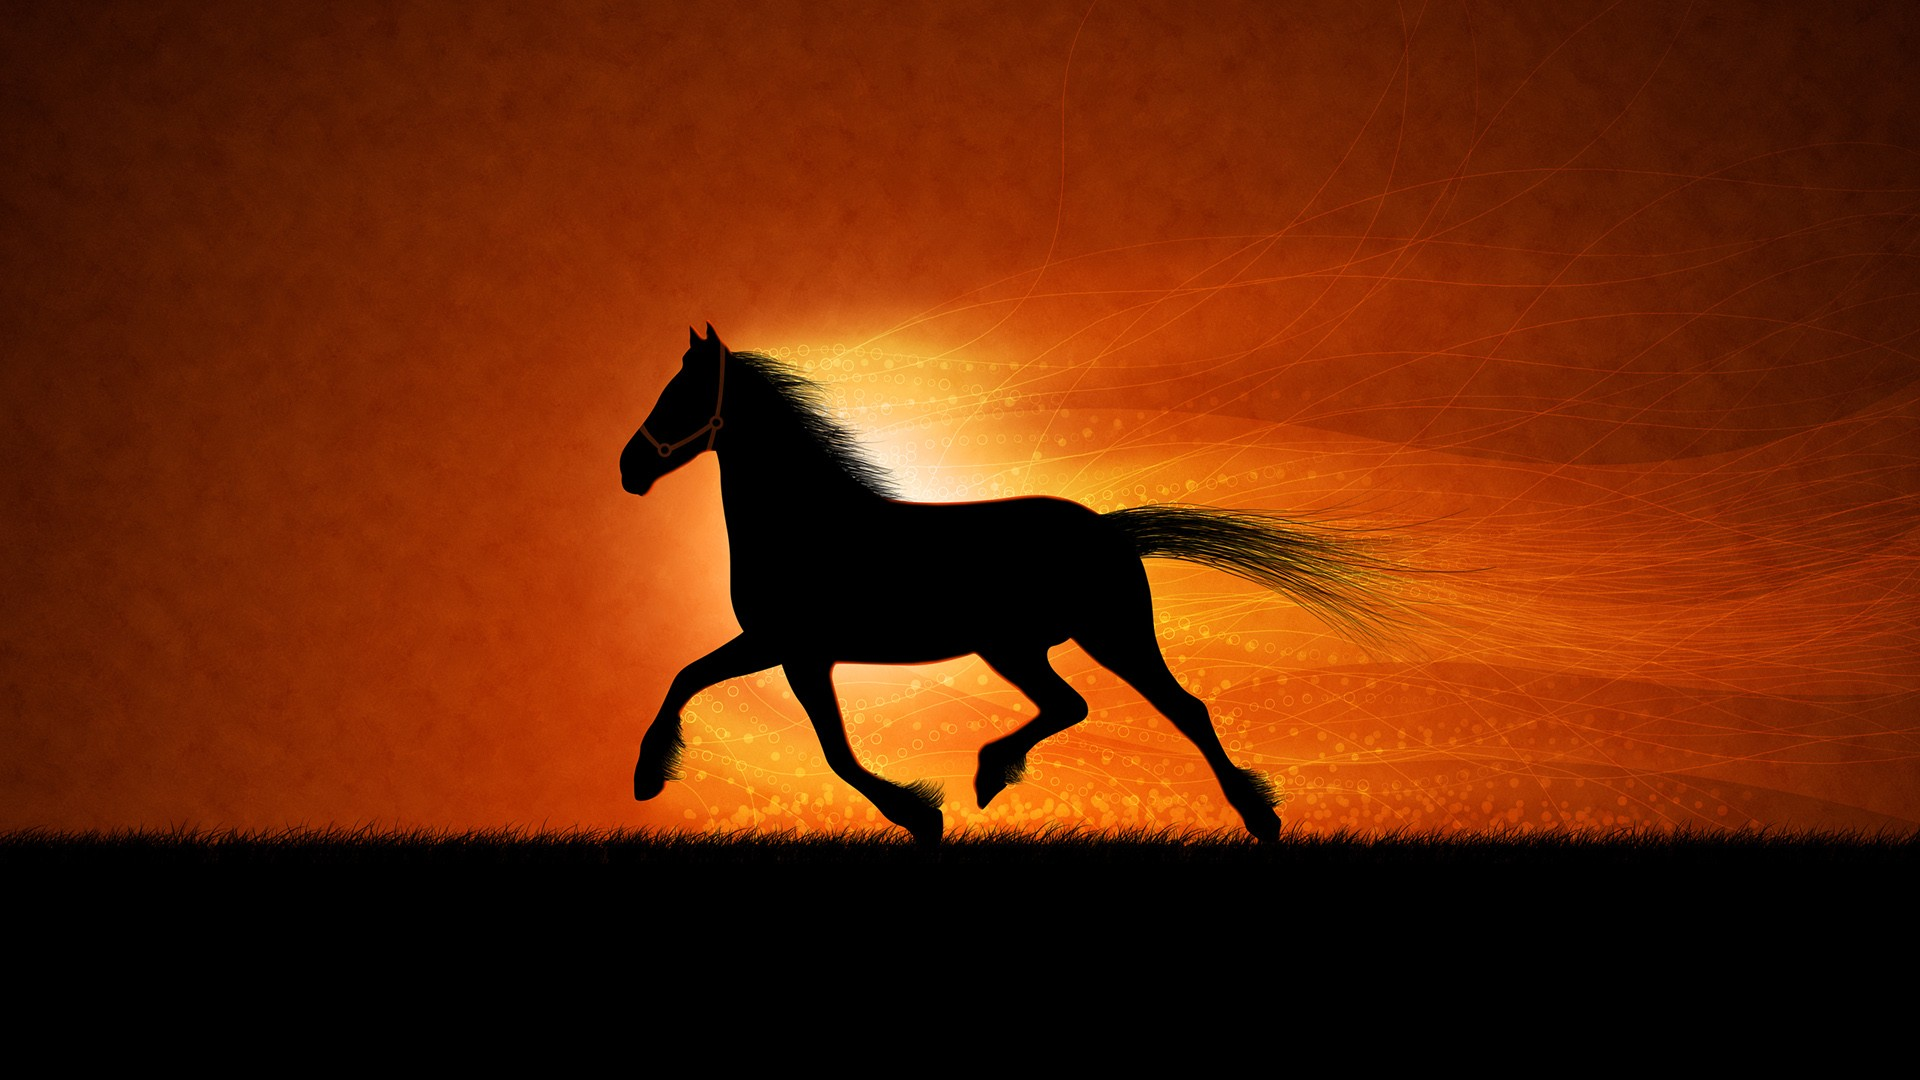 Quote Wallpapers For Iphone 4 Running Horse Wallpapers Hd Wallpapers Id 770